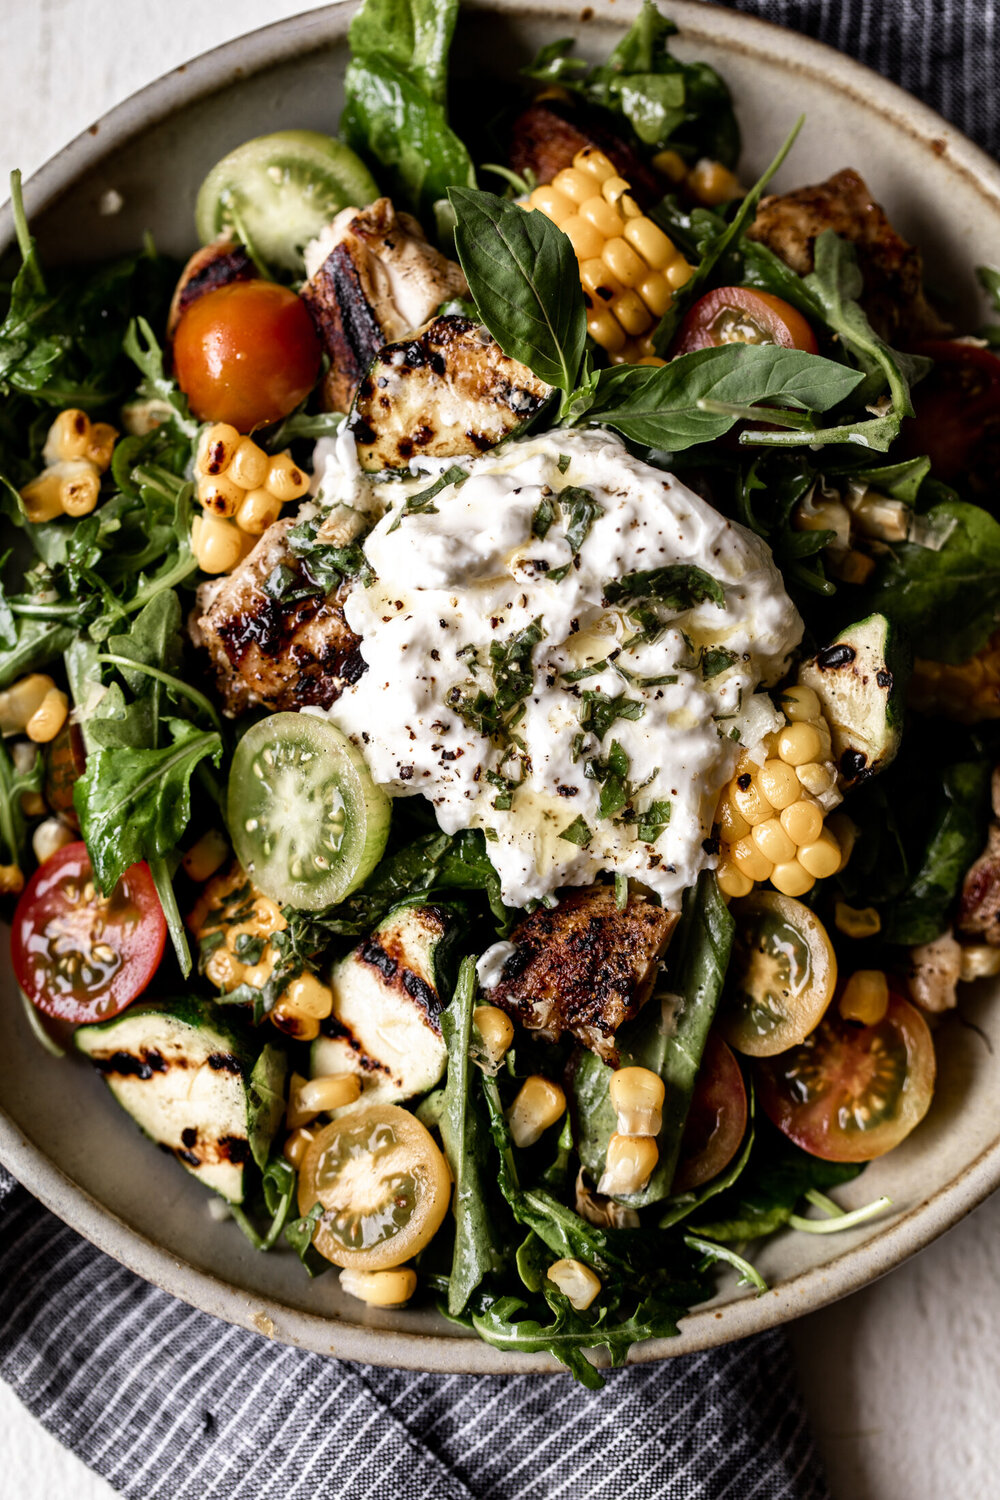 Heirloom Tomato and Grilled Veggie Salad with Burrata and Basil Vinaigrette